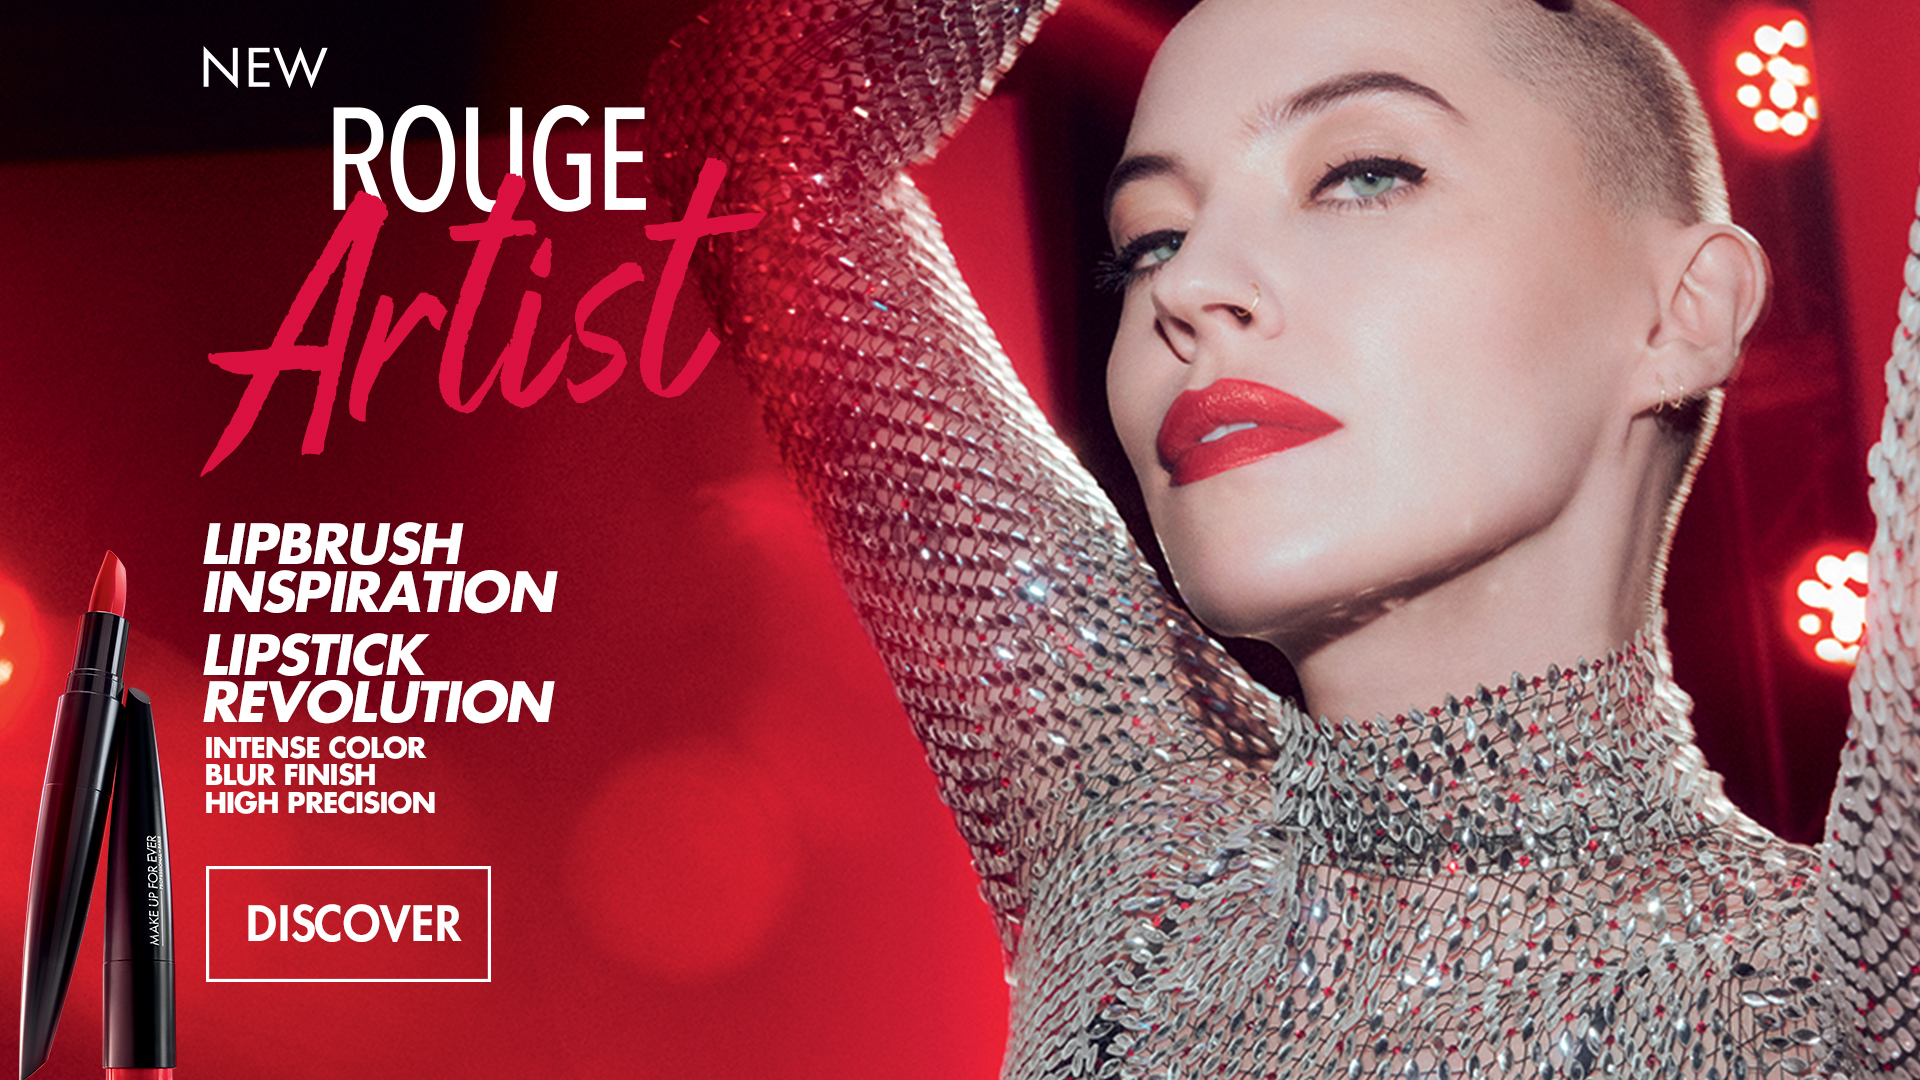 ROuge Artist make up for ever reinvents the lipstick inspired by lipbrush. intense color-blur finish. 60 shades